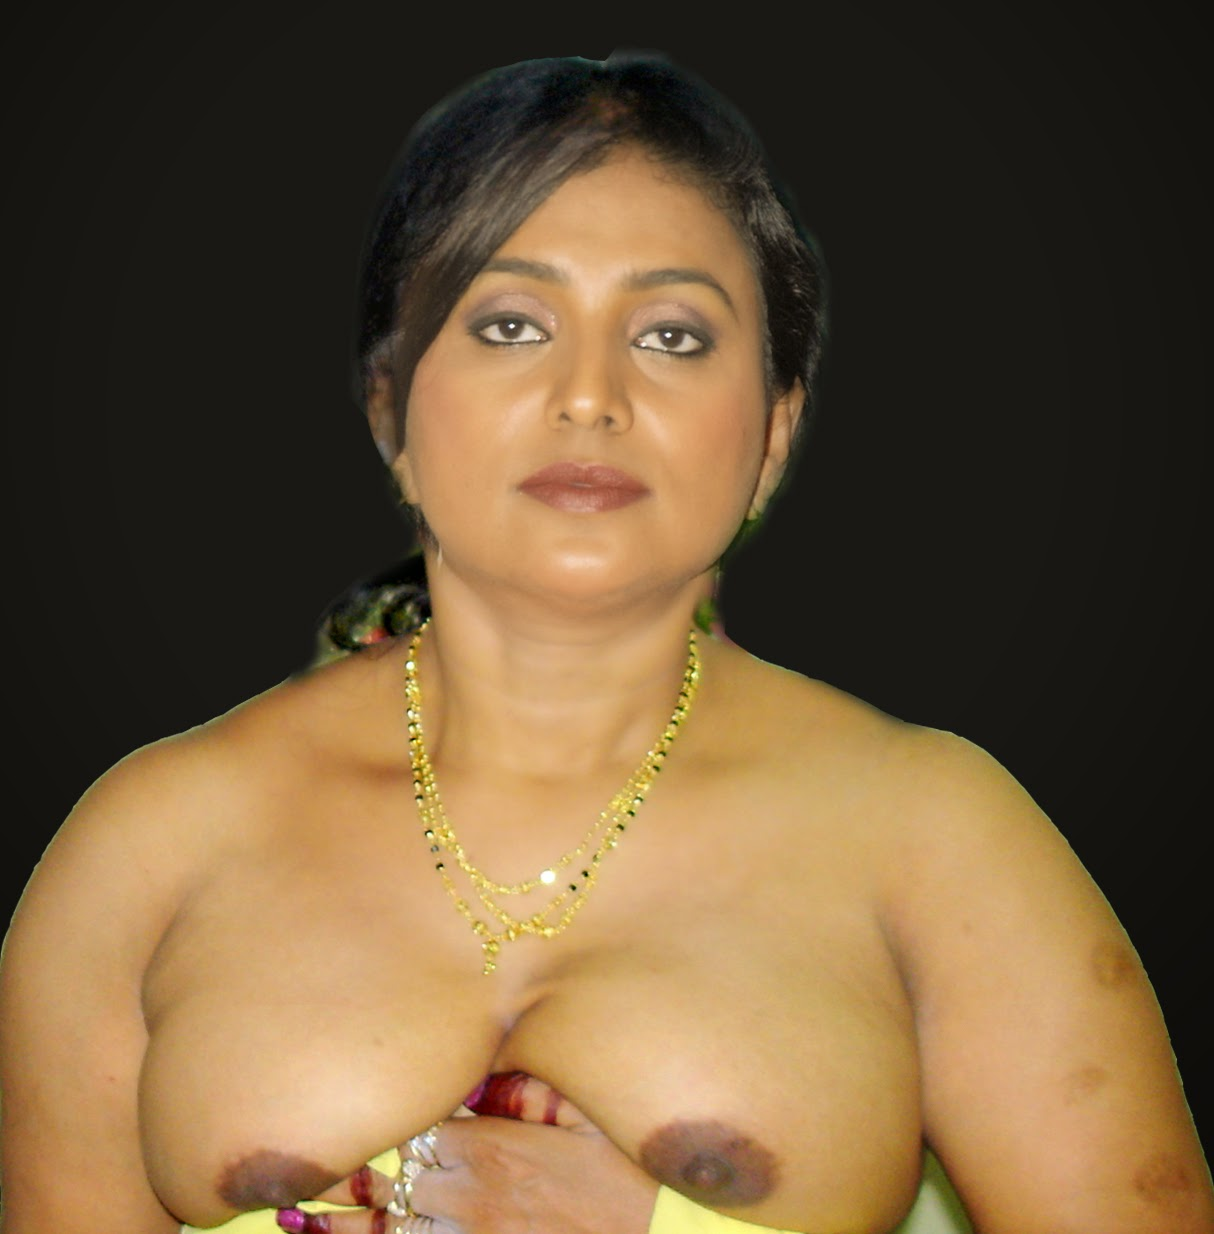 roja hot photos xxx